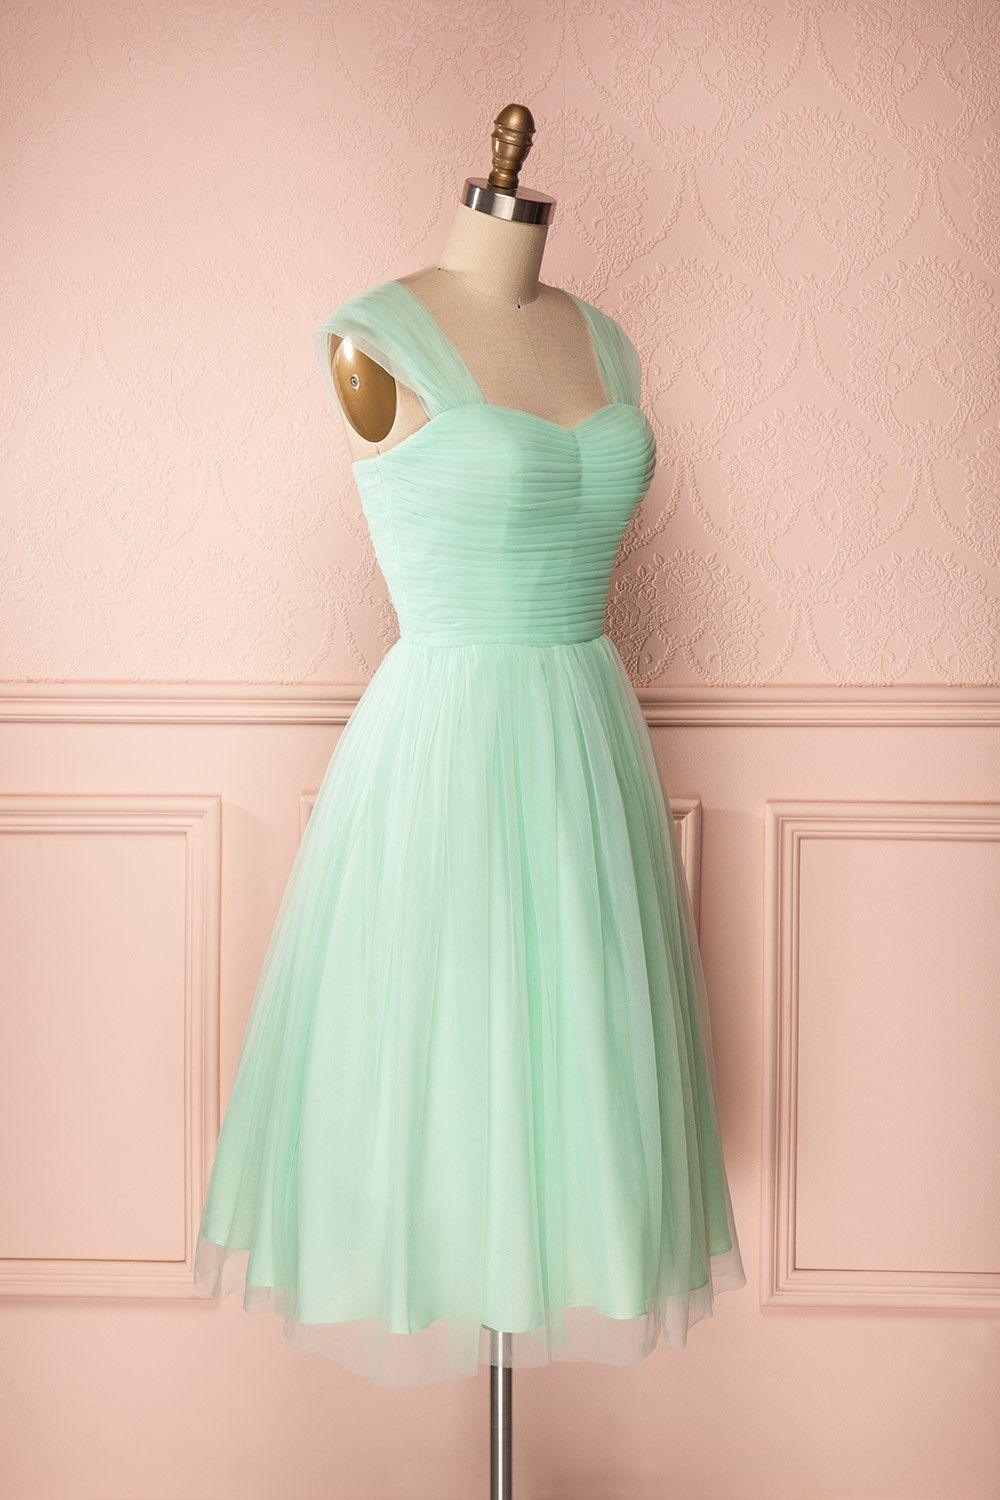 Skye - Mid-length pastel mint green tulle A-line dress 03927be9f9ab